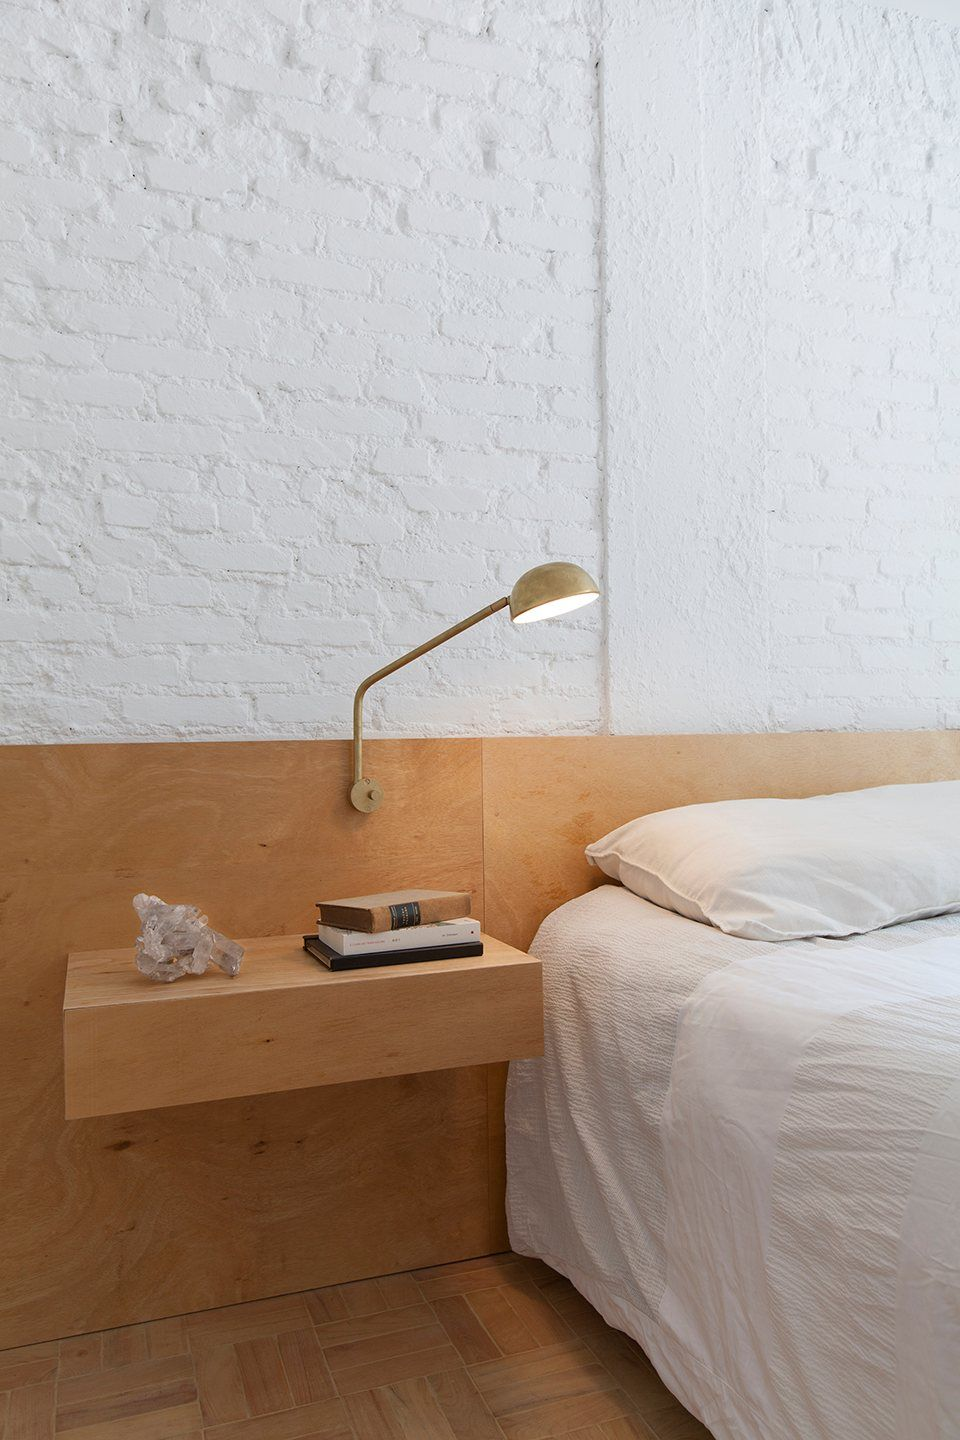 Plywood Headboard And Floating Nightstand Ap Coboga By Alan Chu Up Interiors White Brick Walls Plywood Headboard Plywood Interior